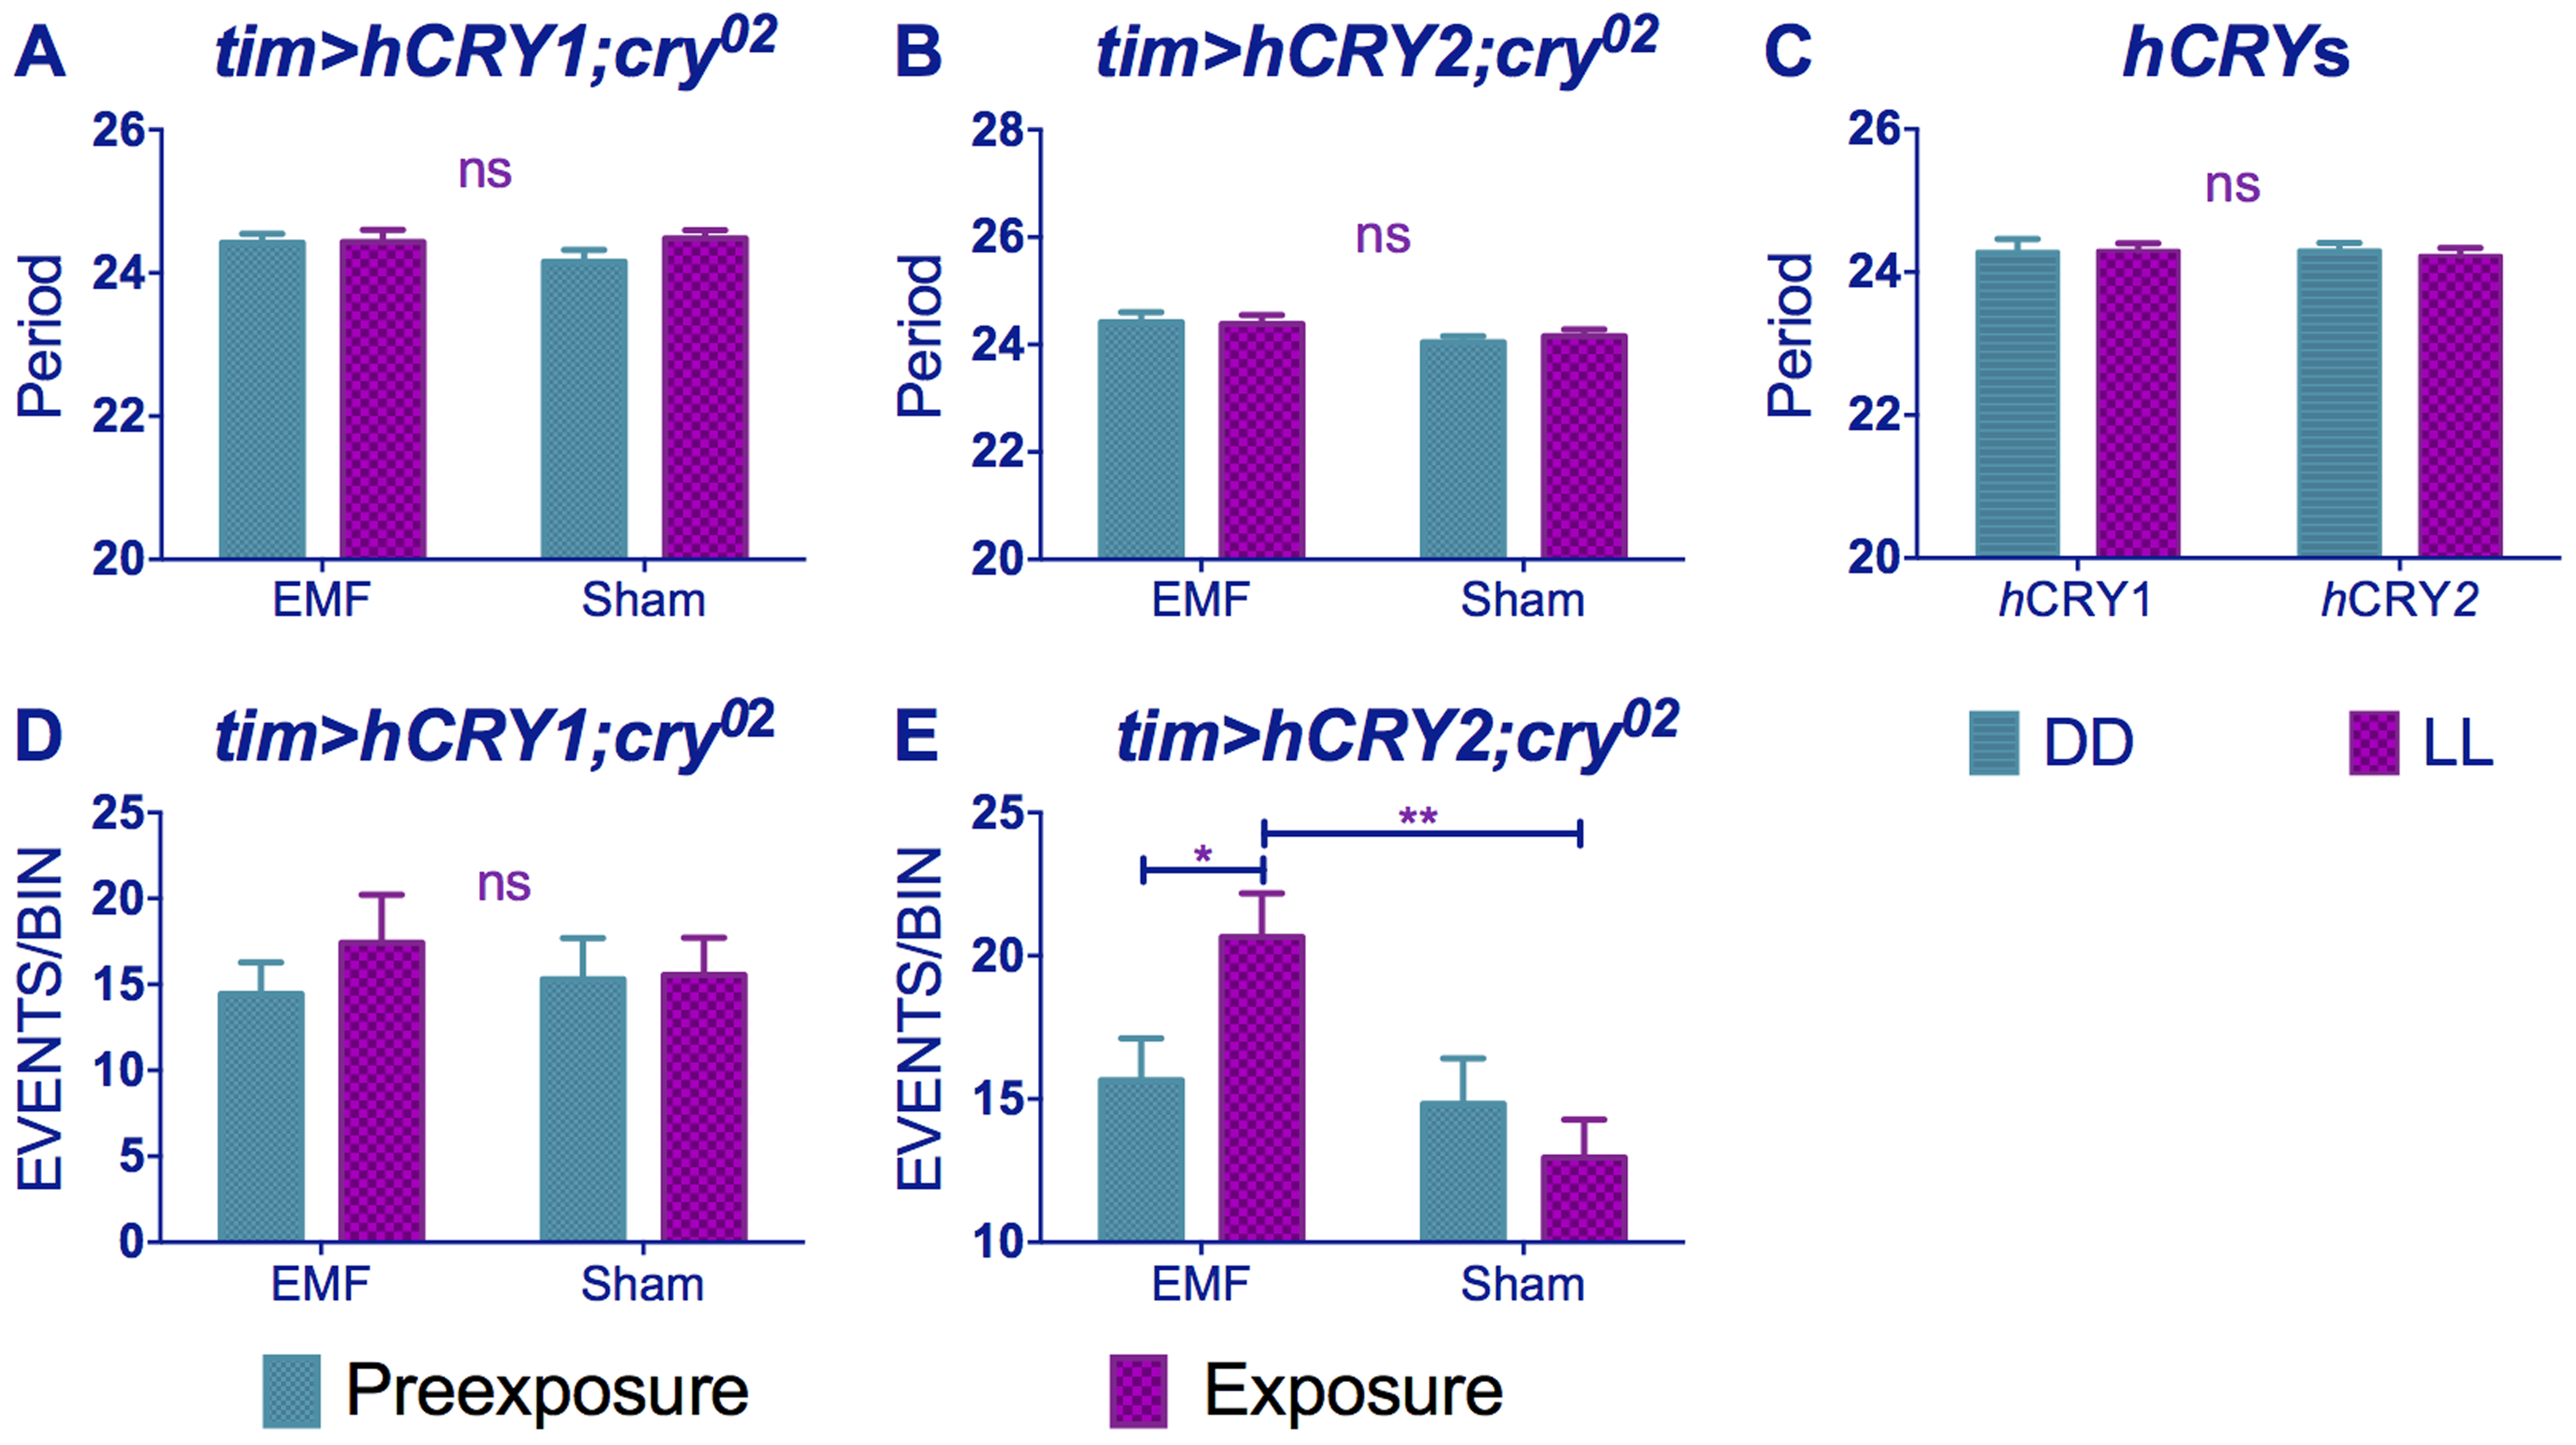 <i>hCRY2</i> but not <i>hCRY1</i> reveals a sensitivity to EMFs.